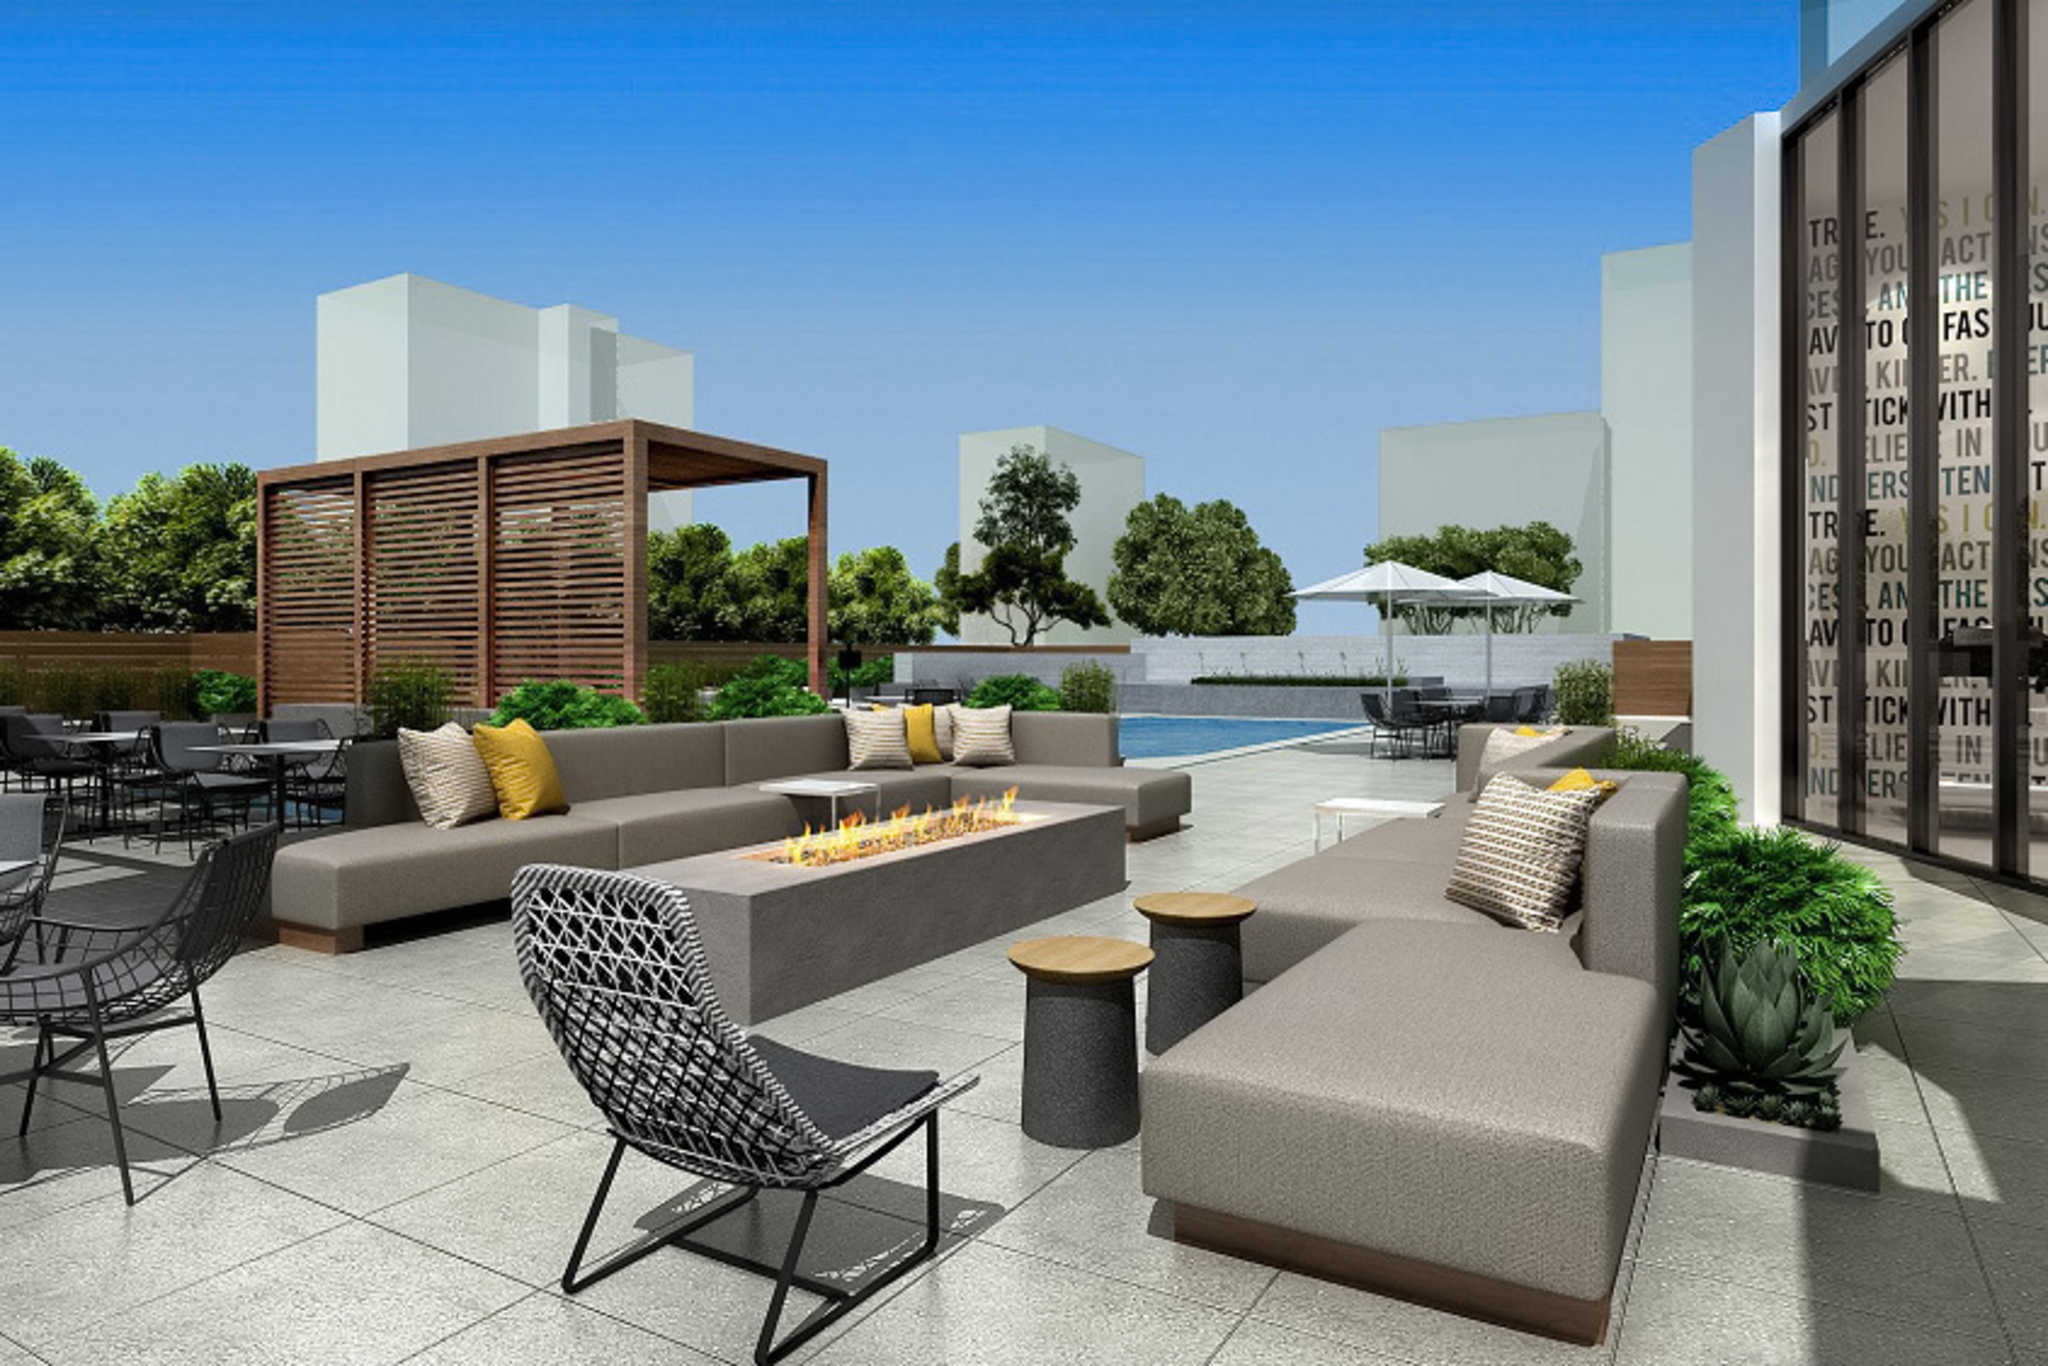 Choice Hotels International Announces Cambria Hotel Suites Los Angeles Lax